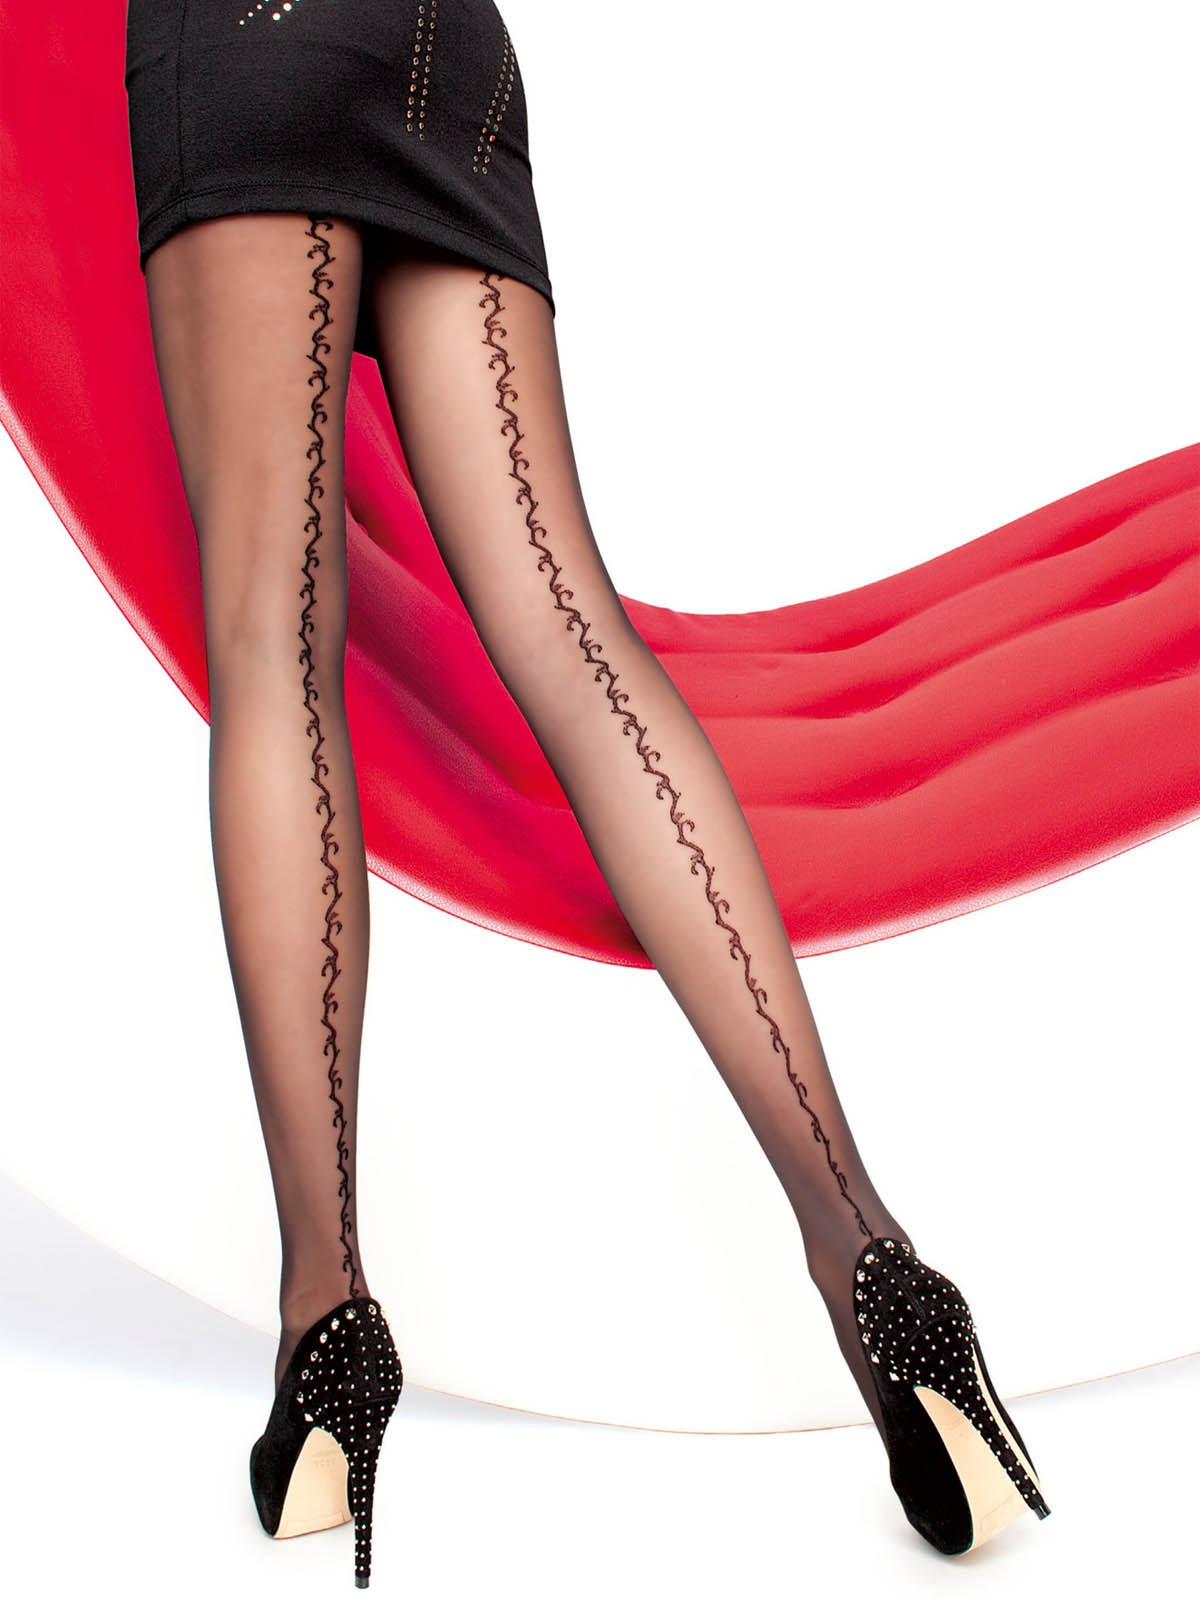 Fiore - Patterned Tights Saphira Black